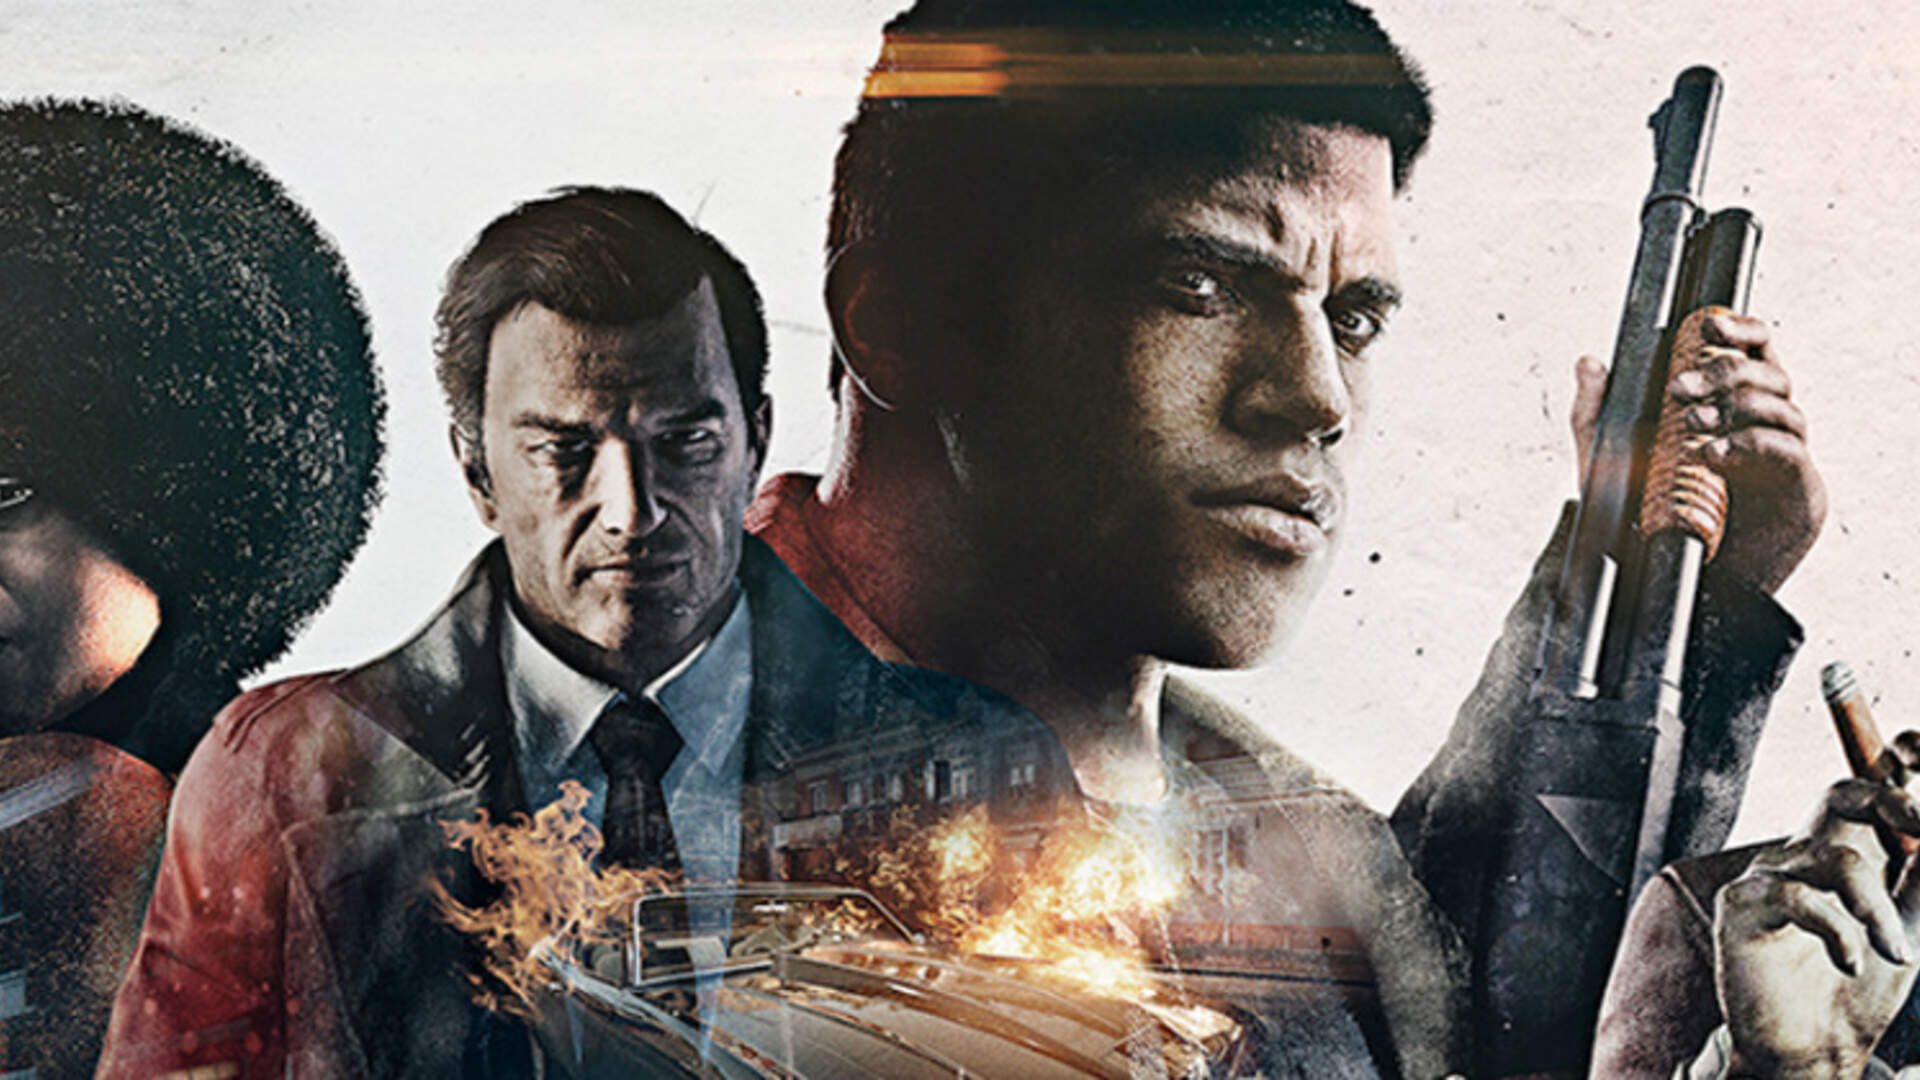 Mafia 3 Developer Hangar 13 Hit With Layoffs